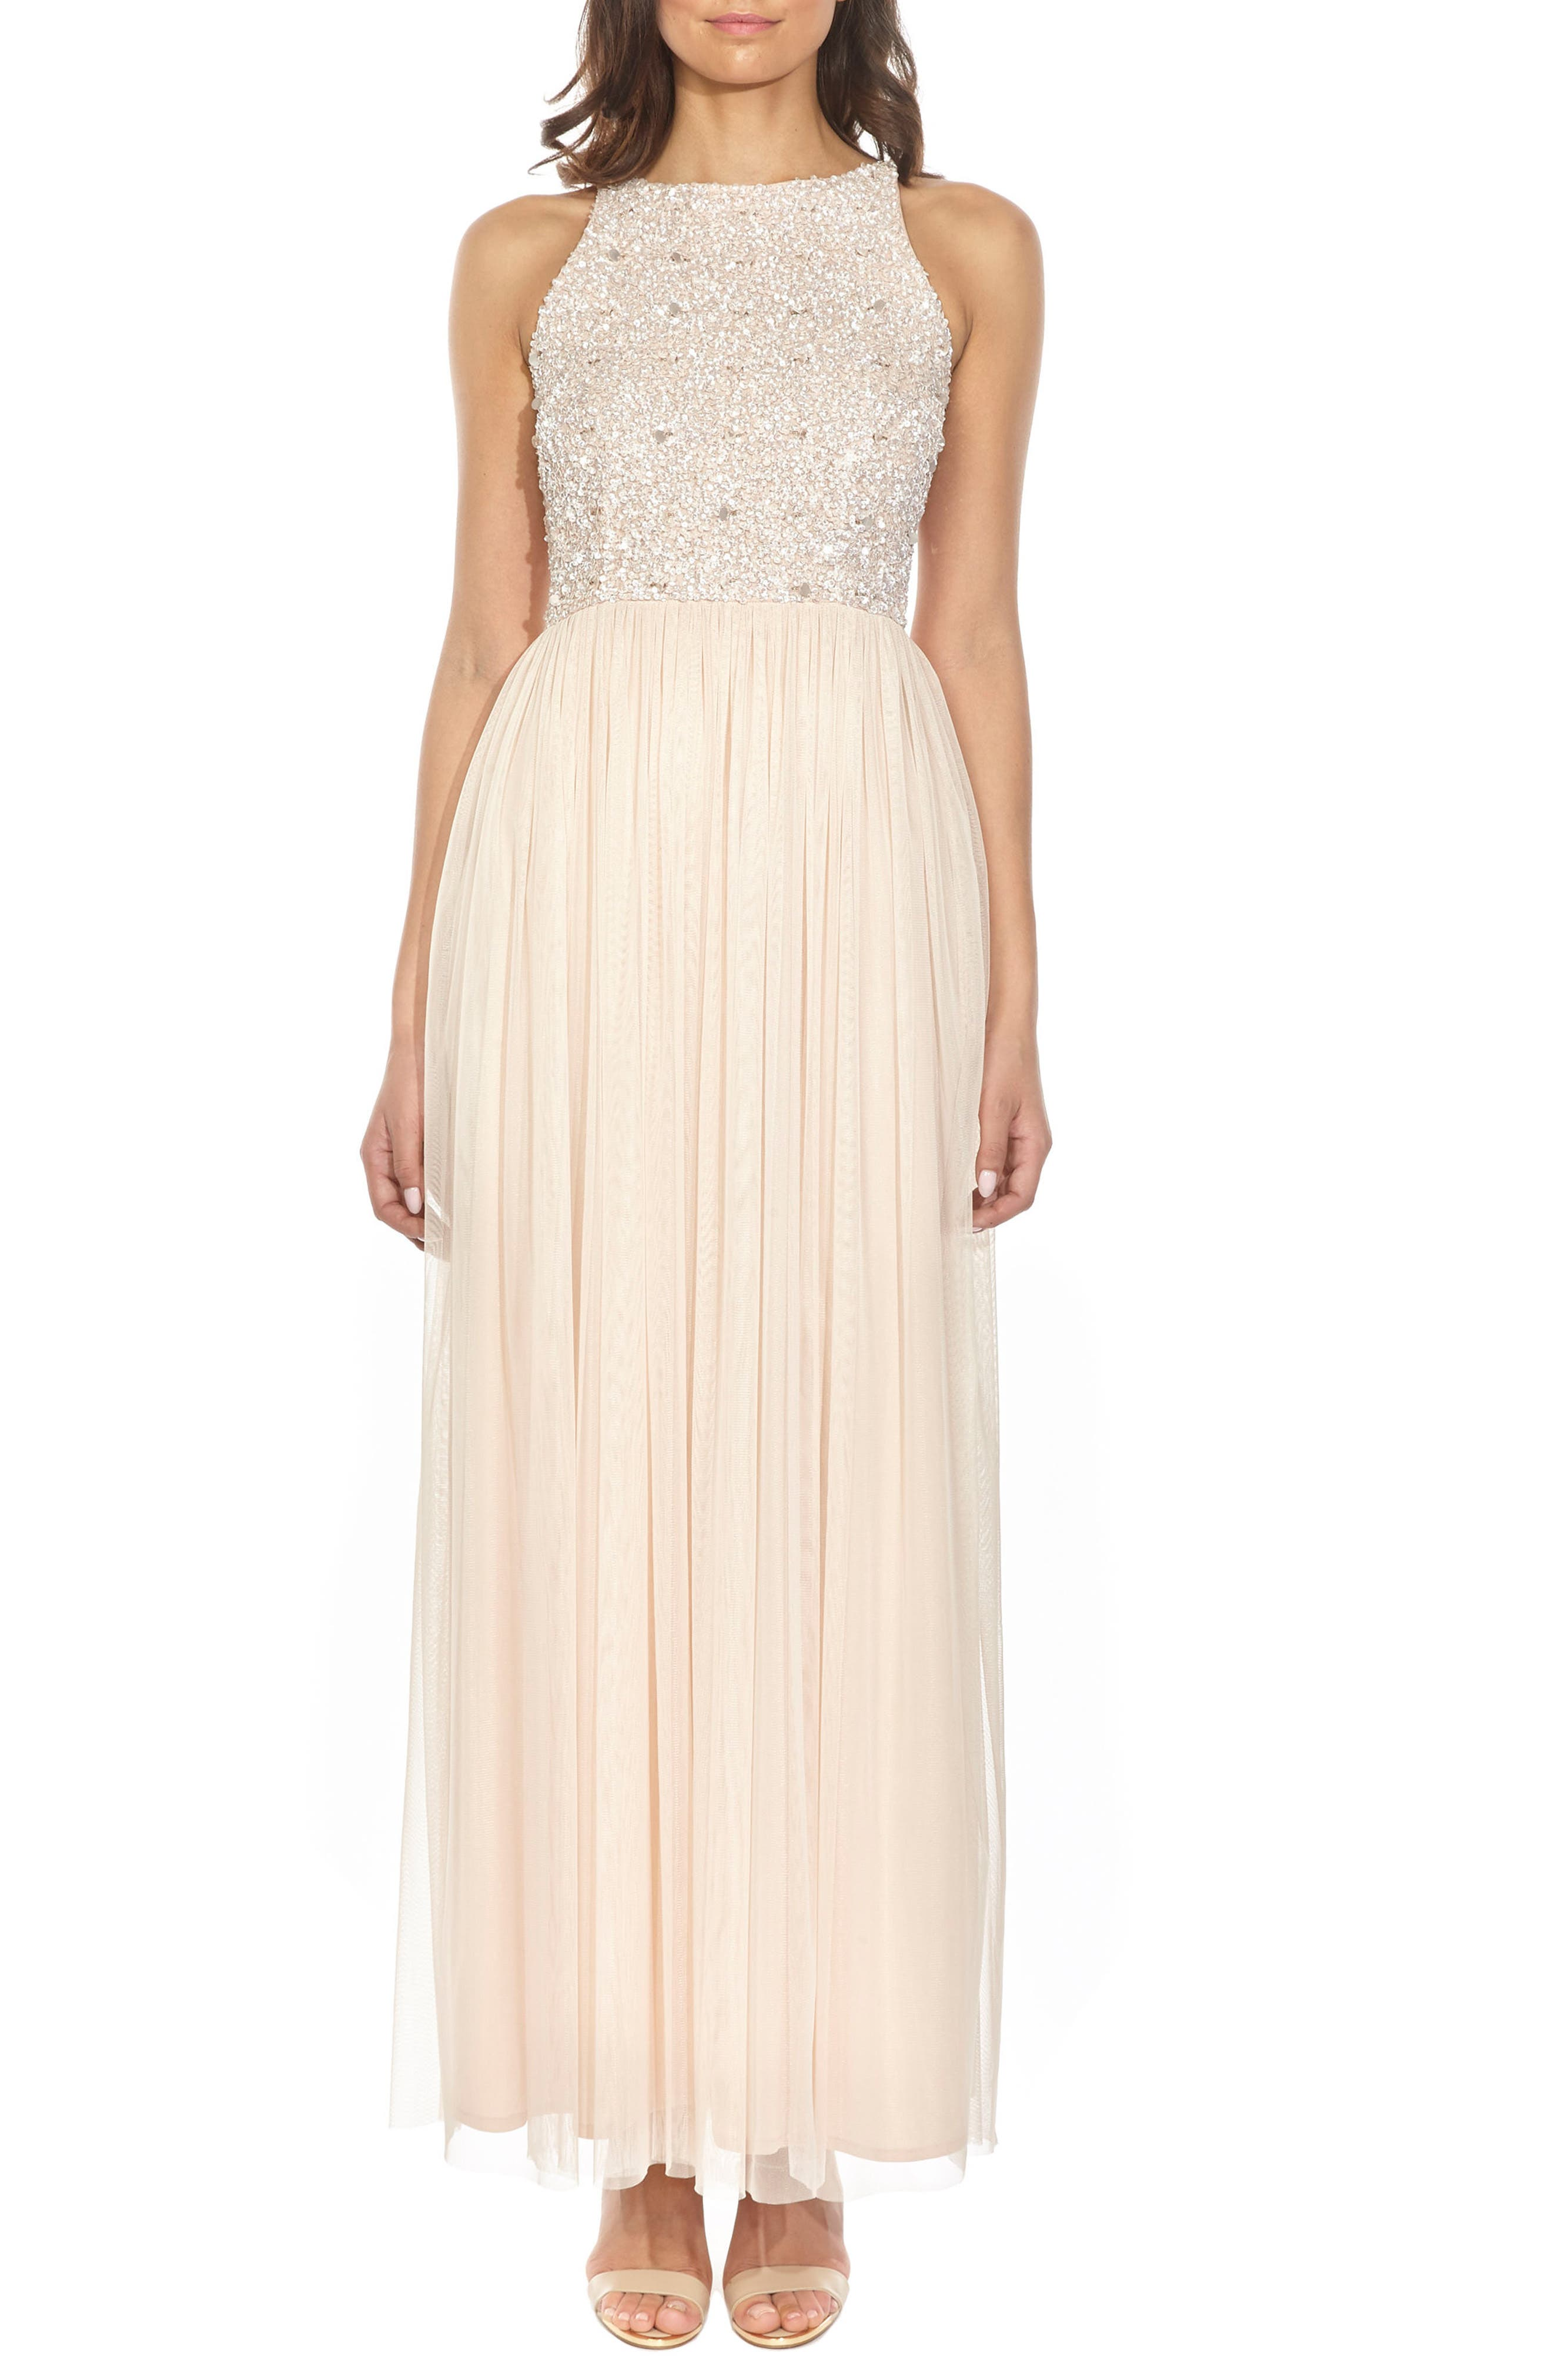 Picasso Embellished Bodice Maxi Dress,                             Main thumbnail 1, color,                             250